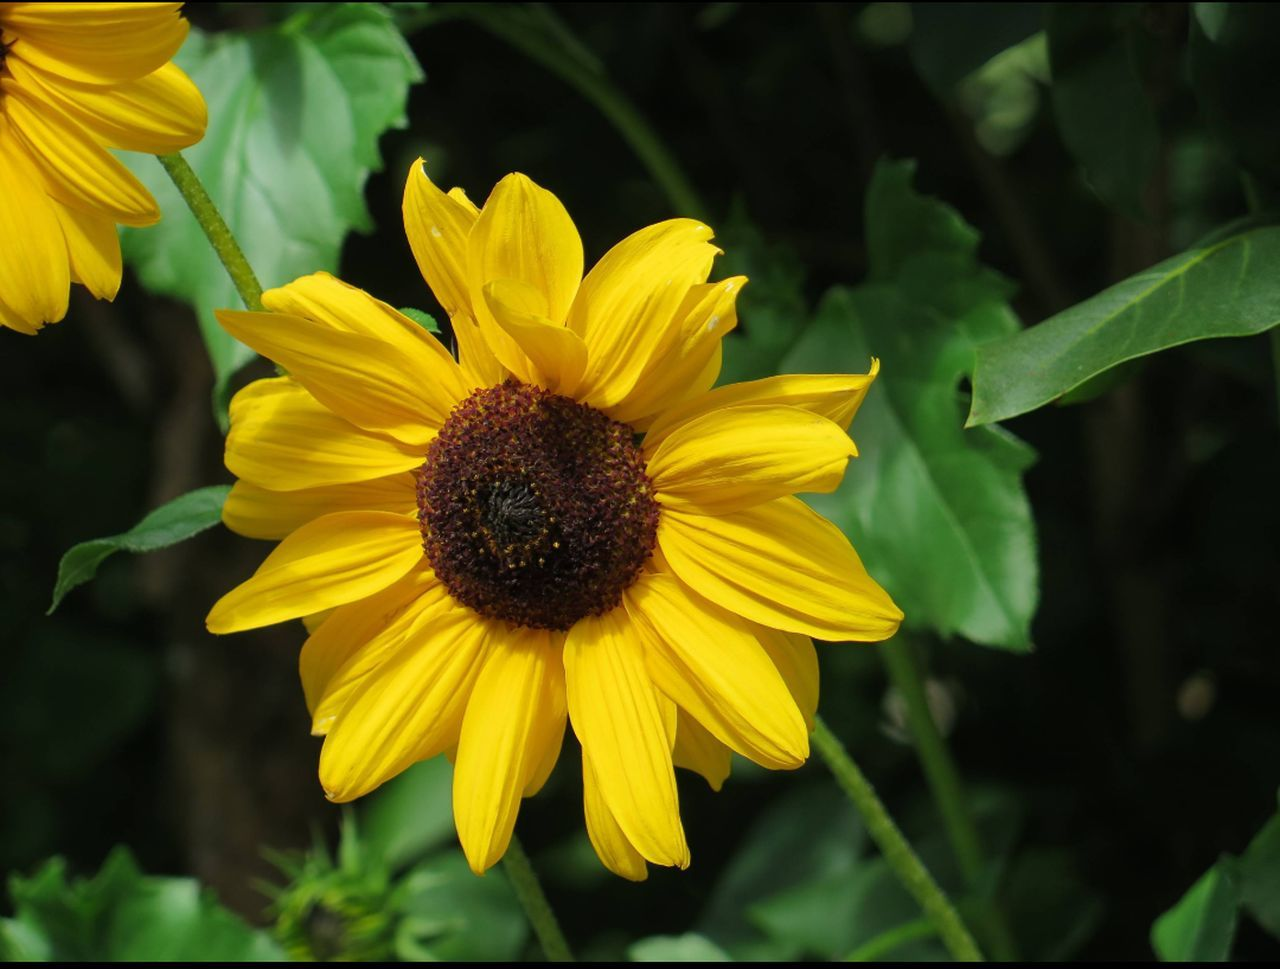 flower, fragility, yellow, petal, growth, nature, freshness, beauty in nature, flower head, plant, blooming, pollen, outdoors, no people, day, close-up, focus on foreground, green color, black-eyed susan